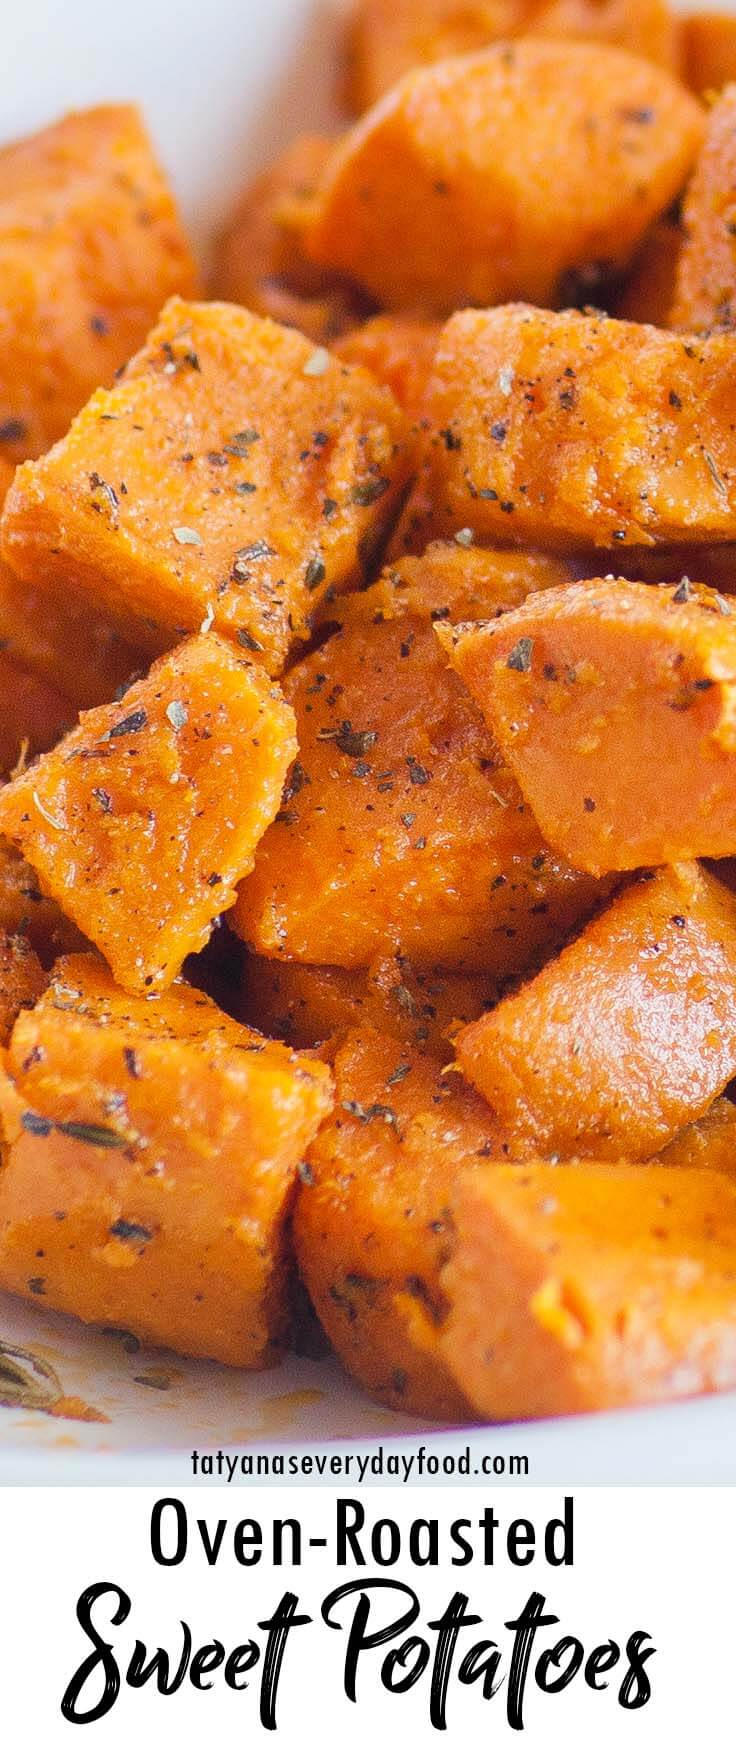 Oven Roasted Sweet Potatoes video recipe